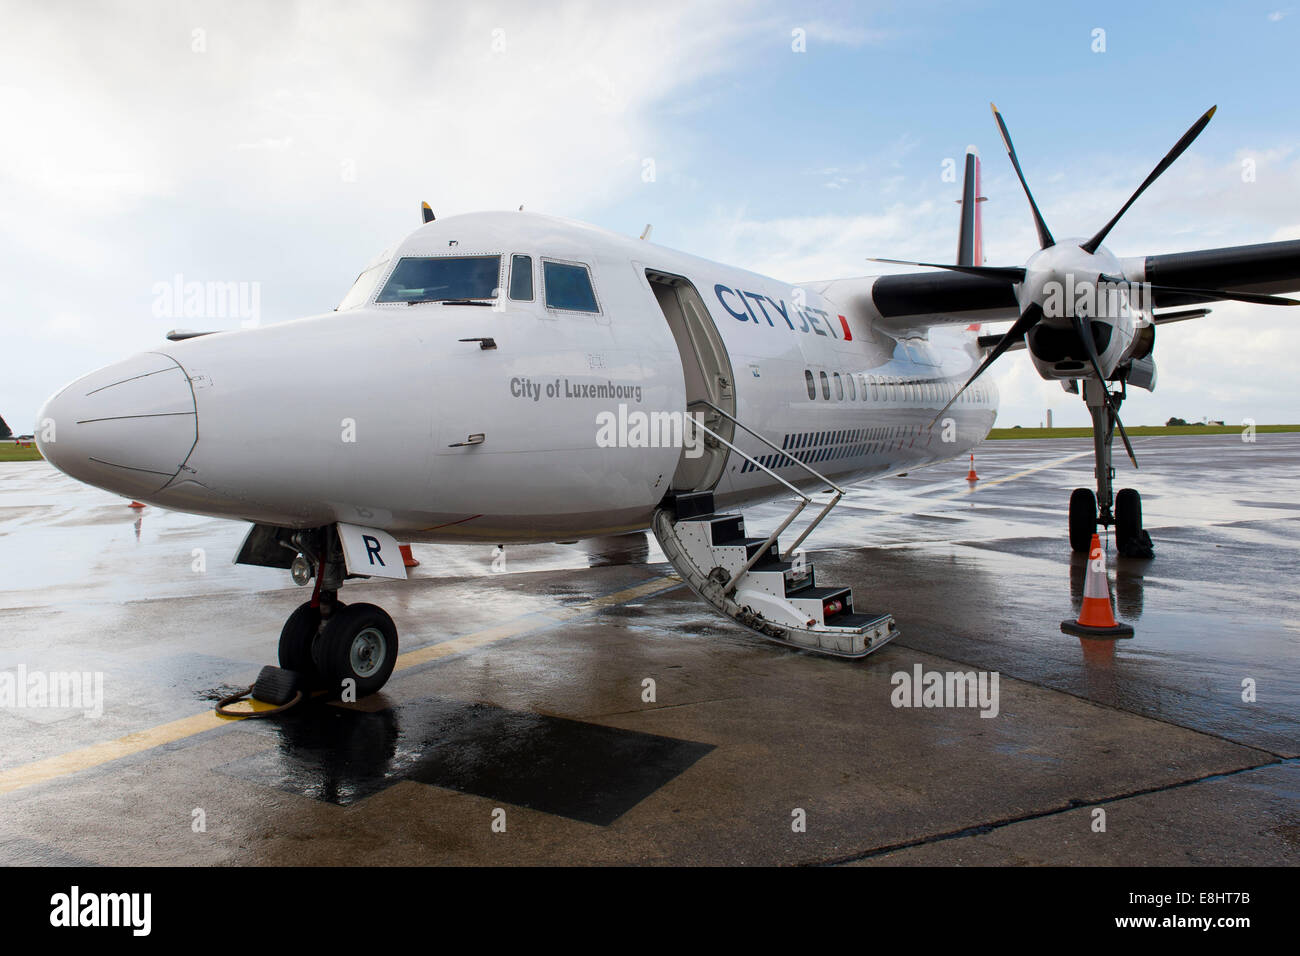 A CityJet Fokker 50 jet airplane preparing for a flight to Luxembourg at Cardiff Airport, South Wales. - Stock Image